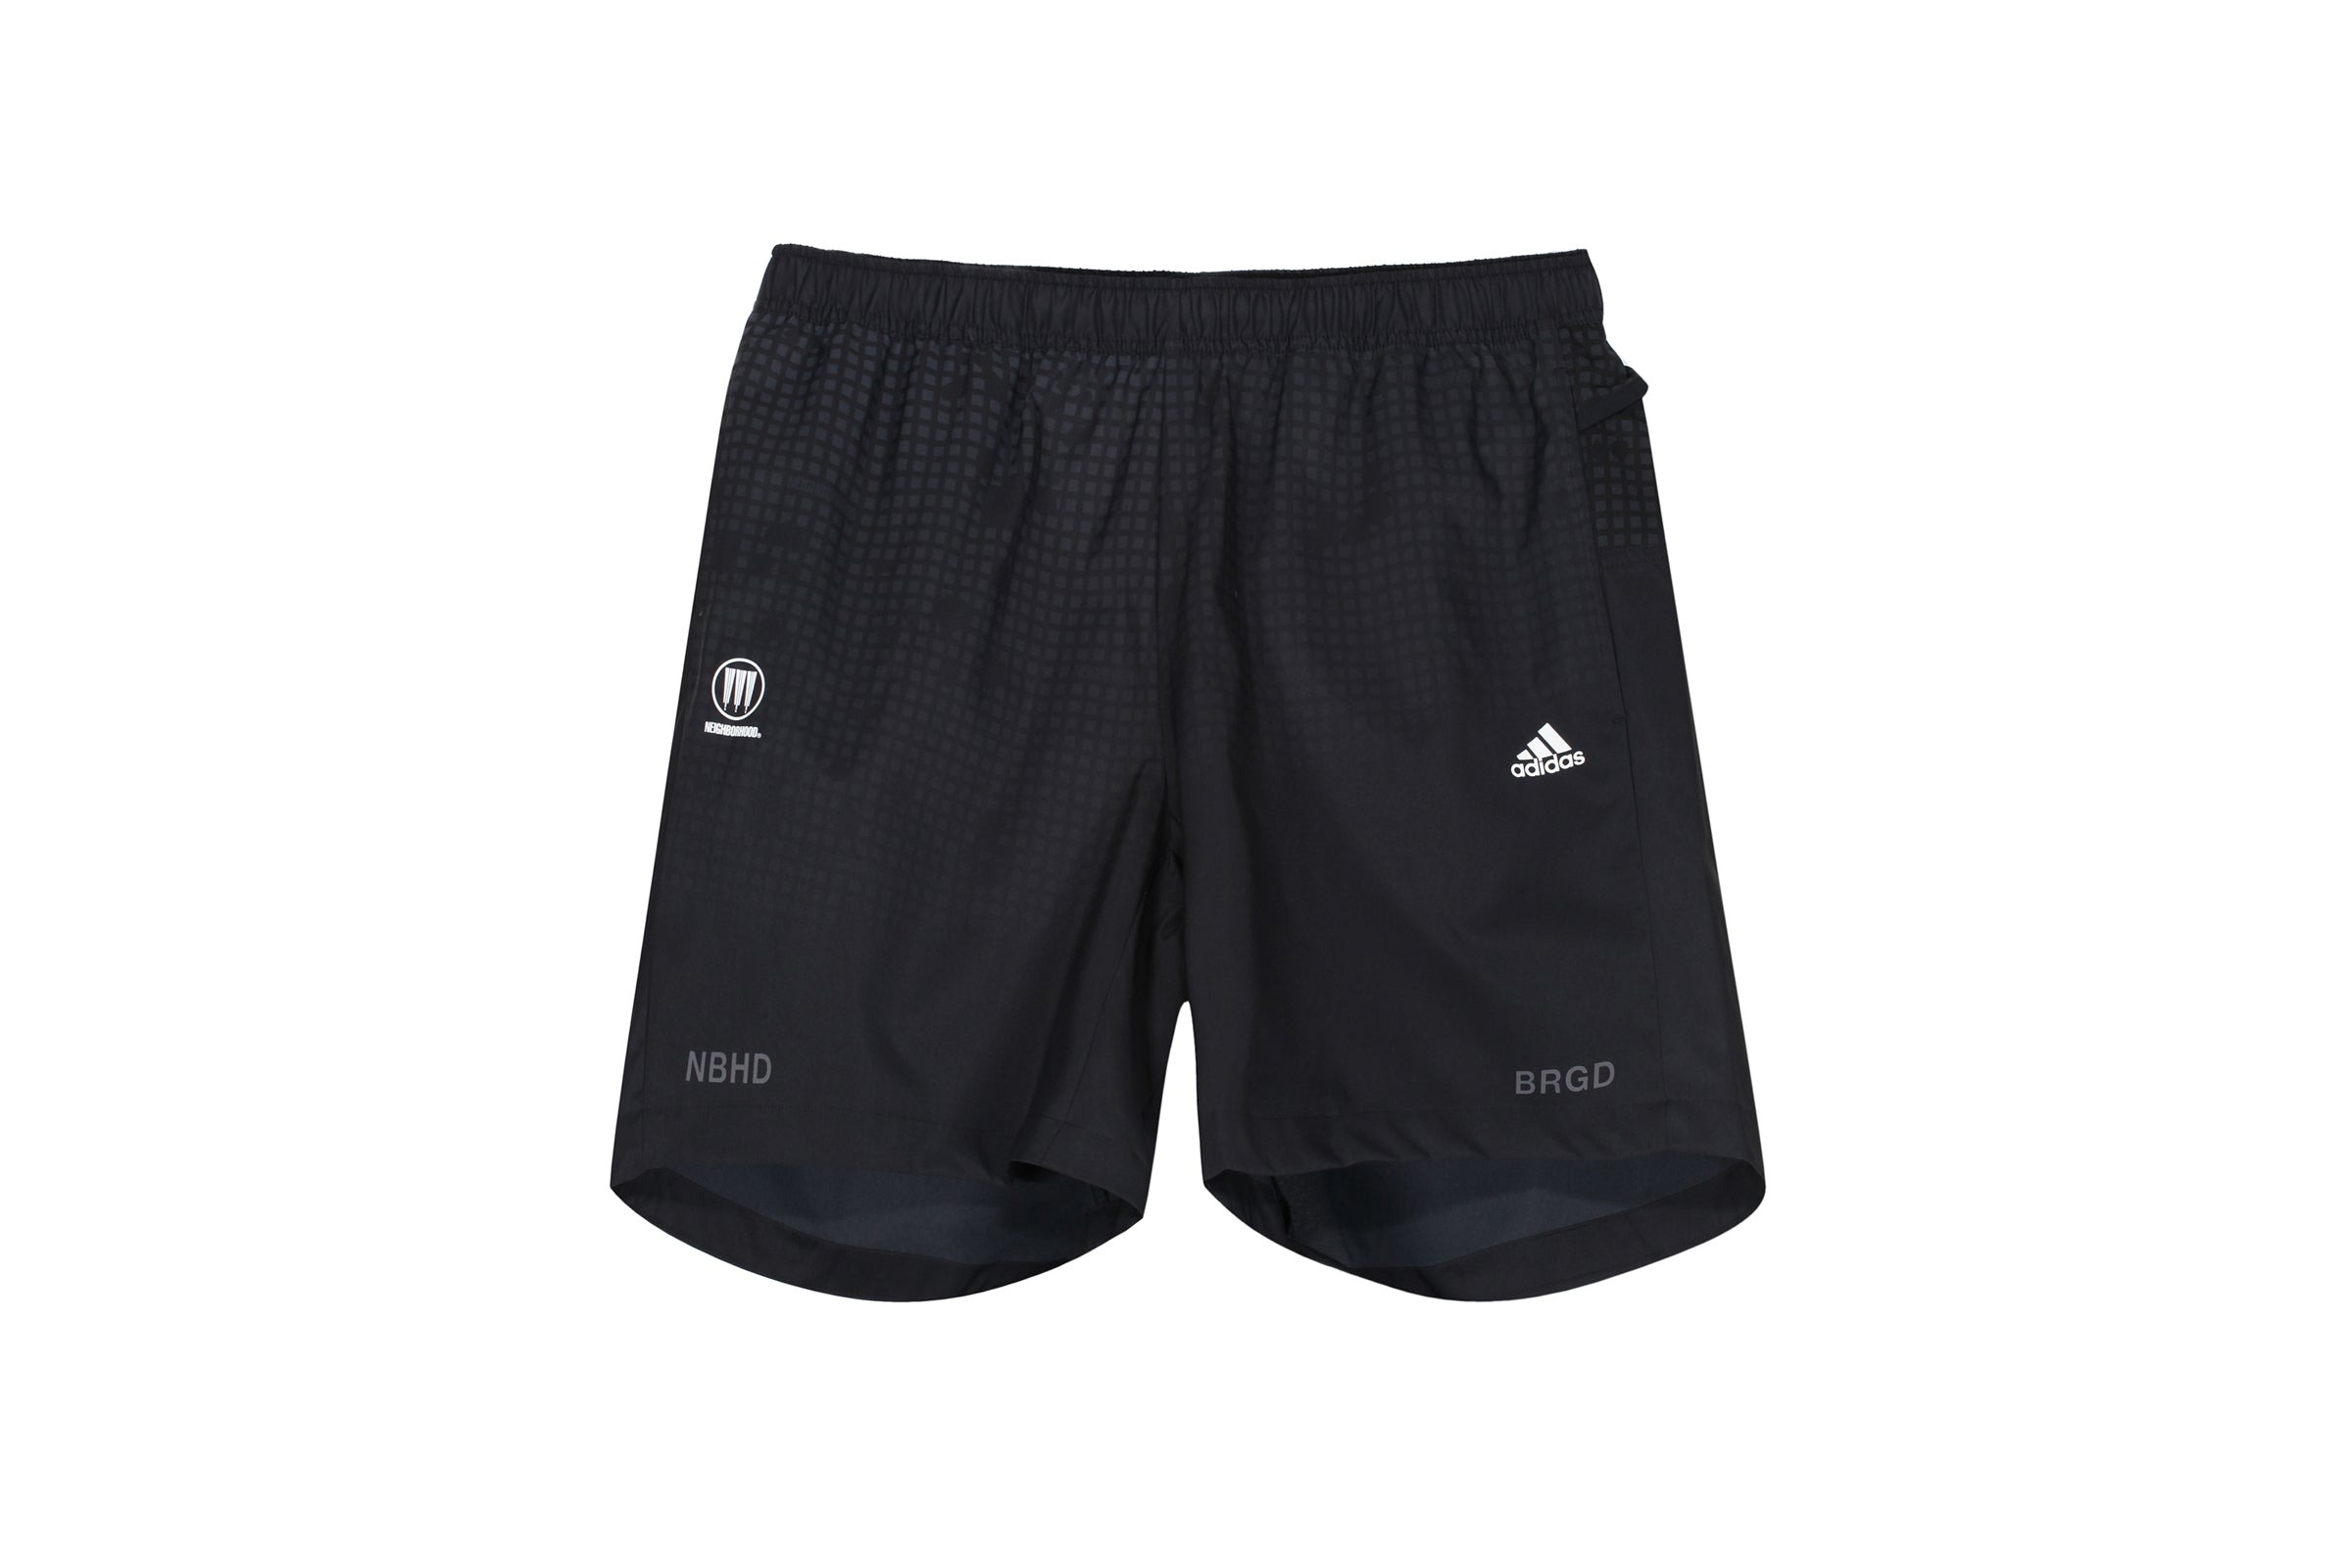 Shorts Adidas Shorts x Neighborhood Run Adidas Run reQdxoCBW